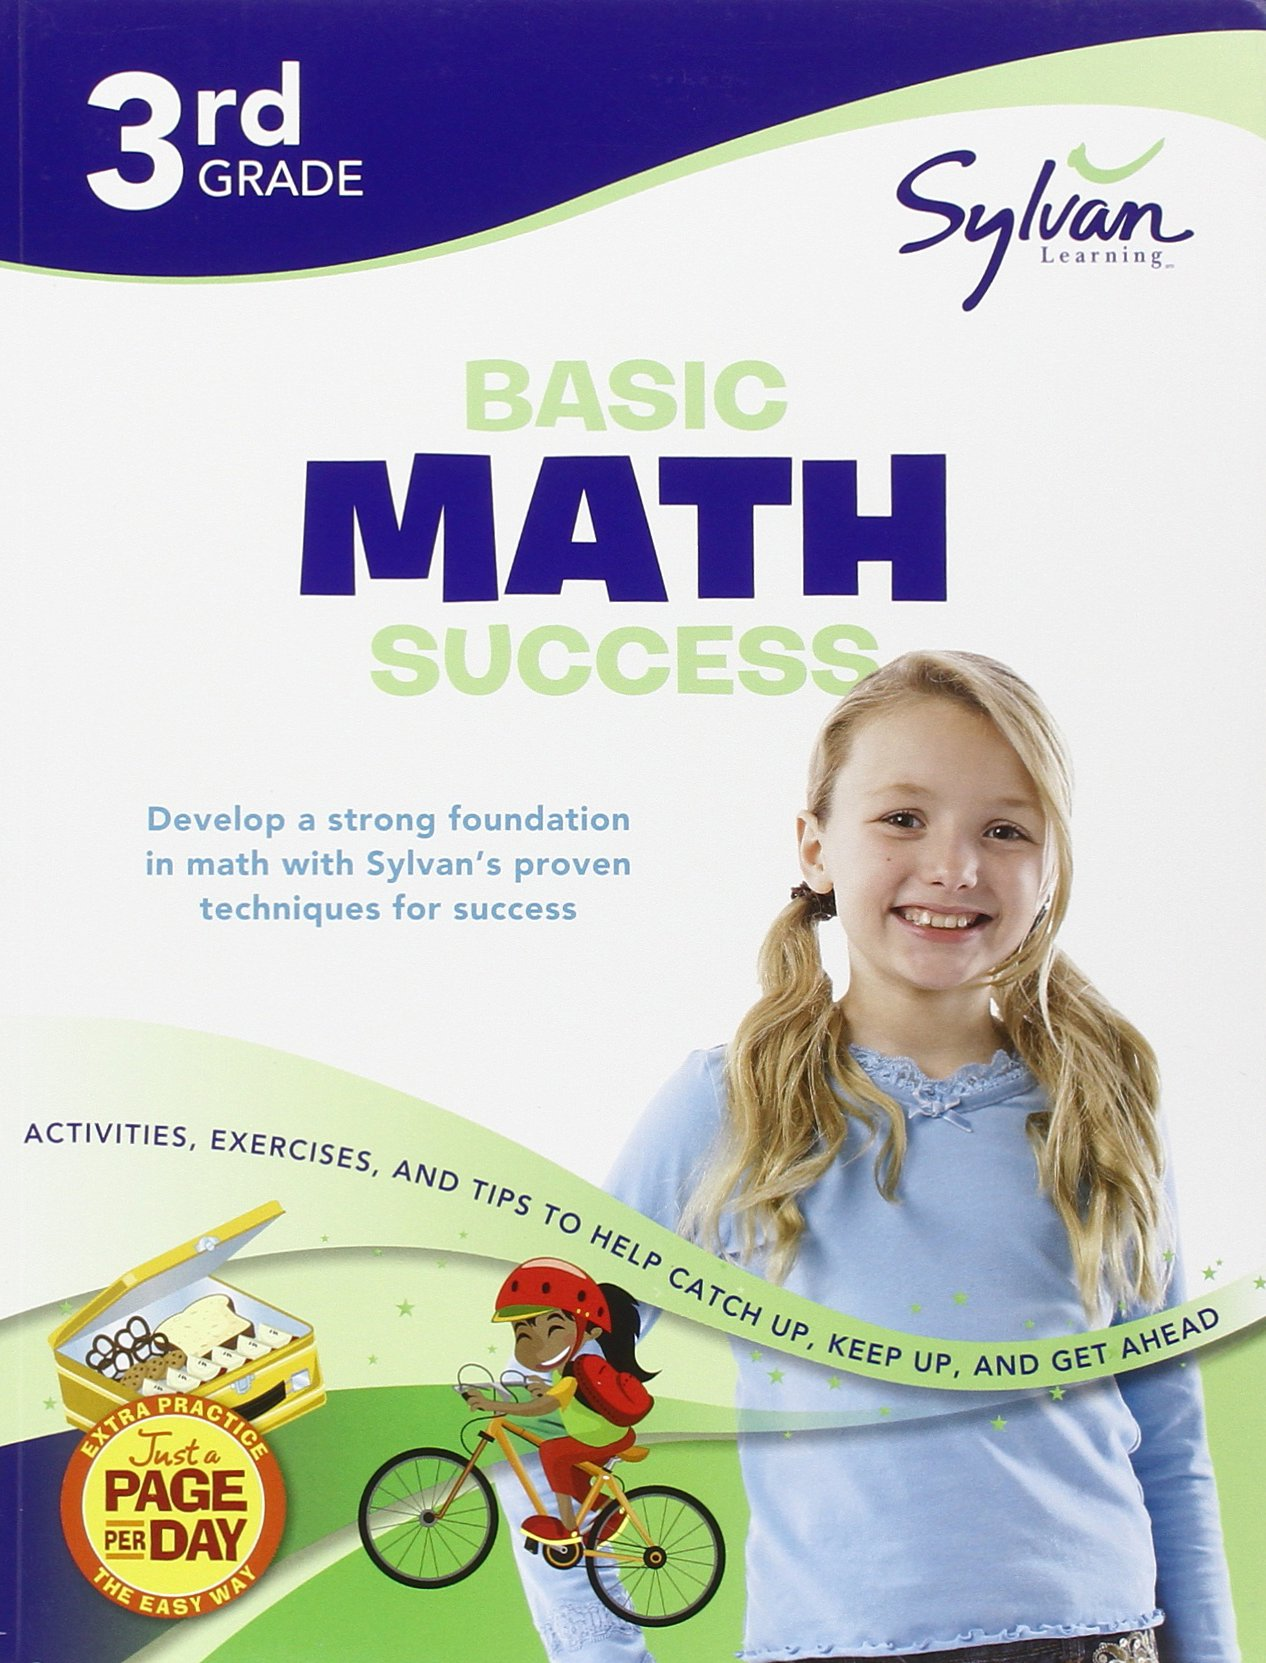 Worksheet Third Grade Math Books third grade basic math success sylvan workbooks learning 9780375430398 amazon com books